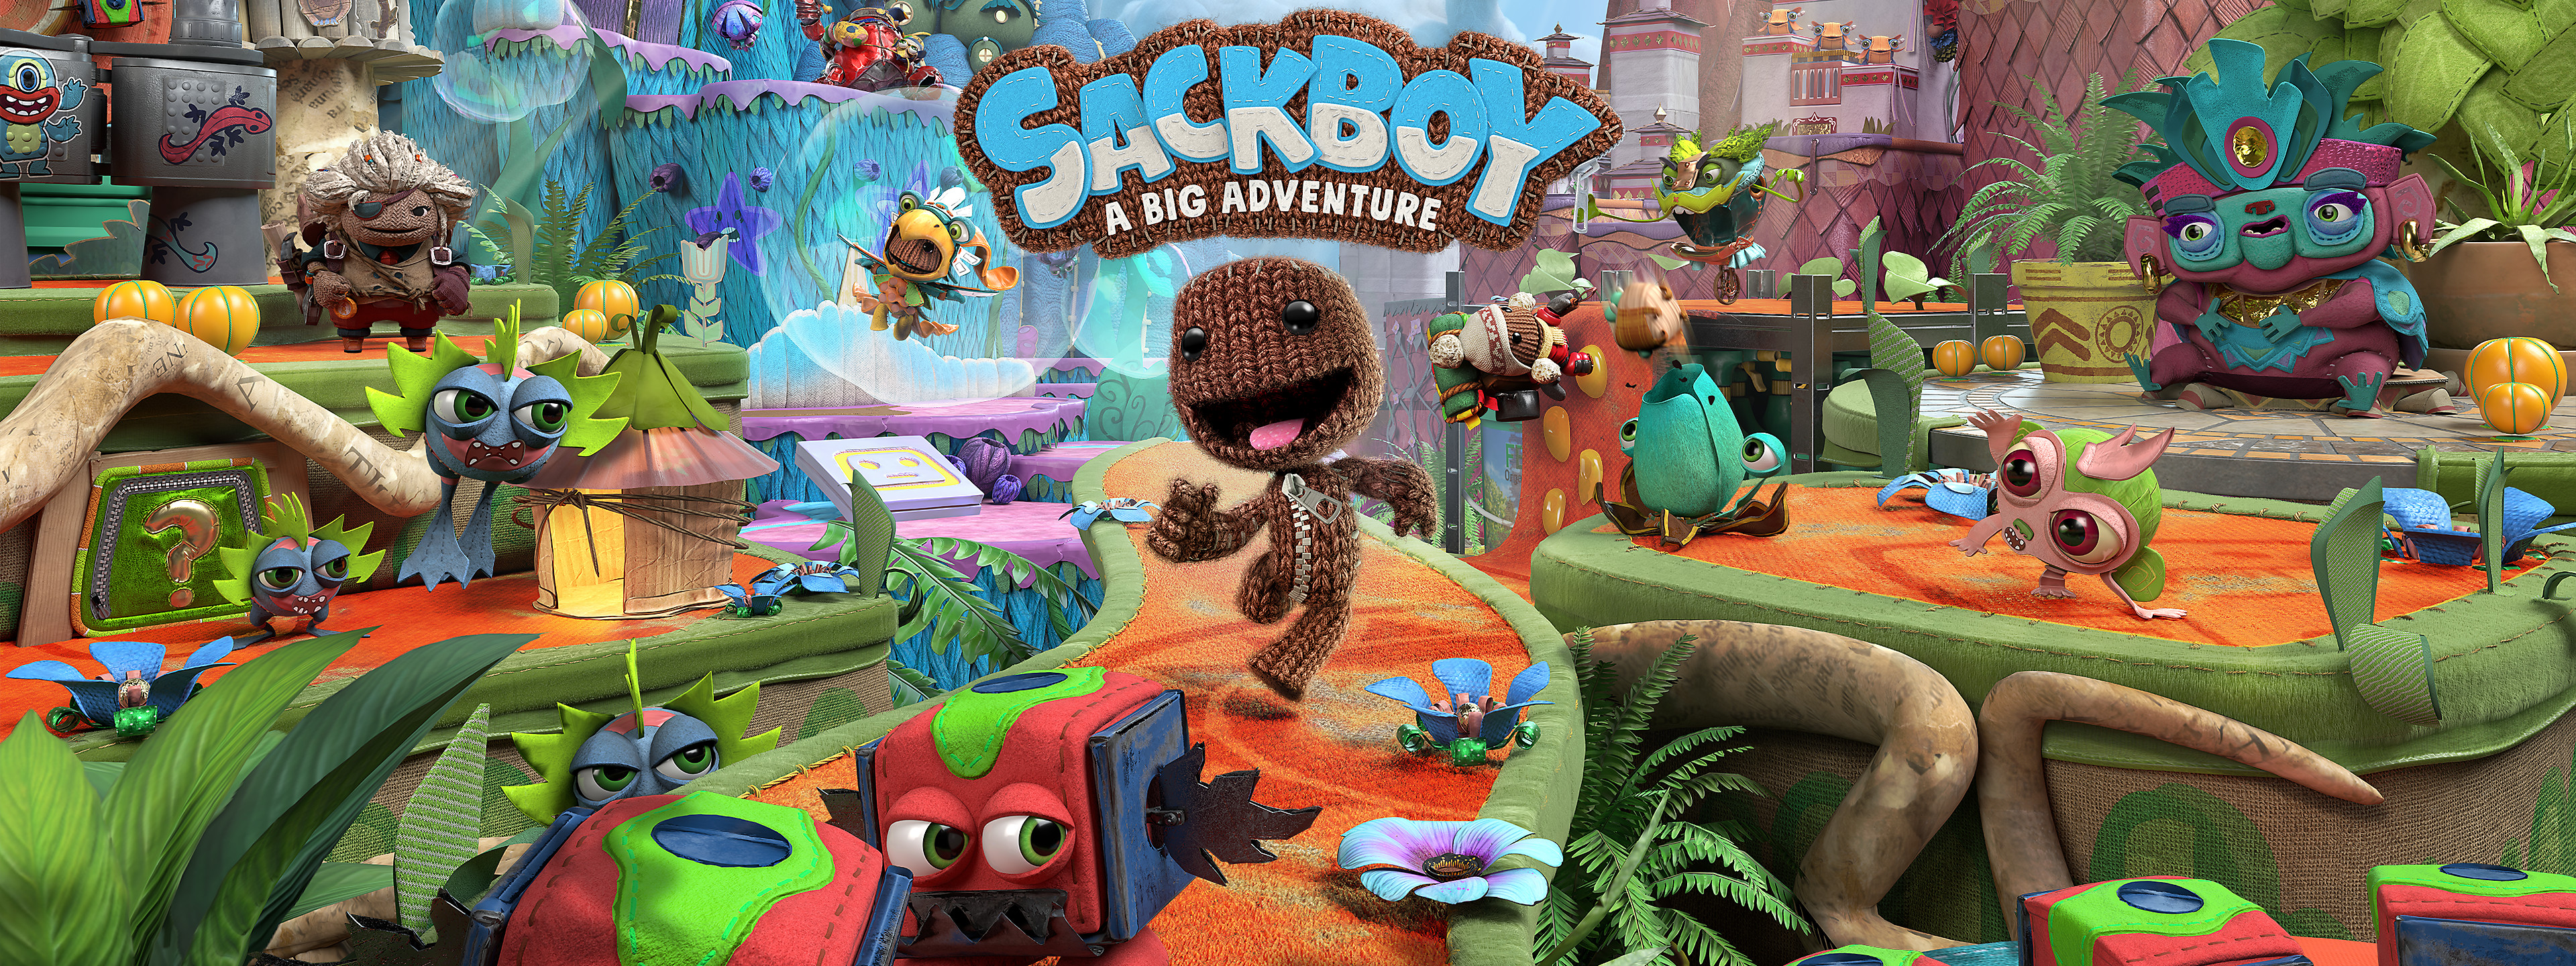 Sackboy: A Big Adventure - Now Available